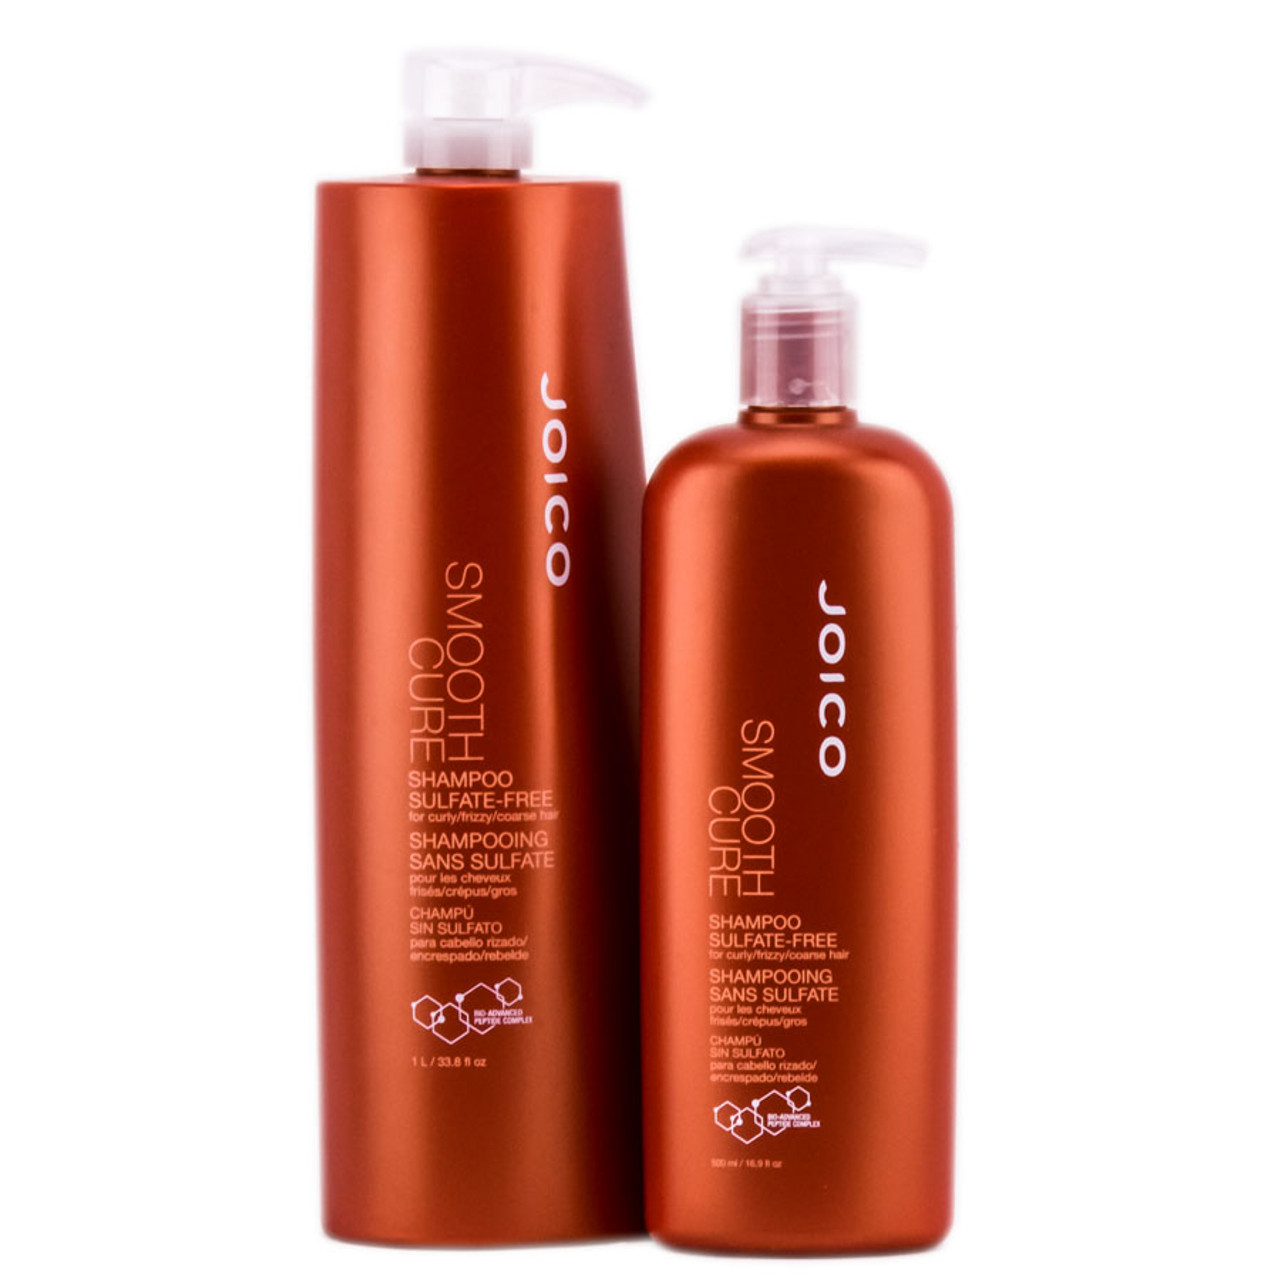 Joico Smooth Cure Sulfate-Free Shampoo For Curly Frizzy